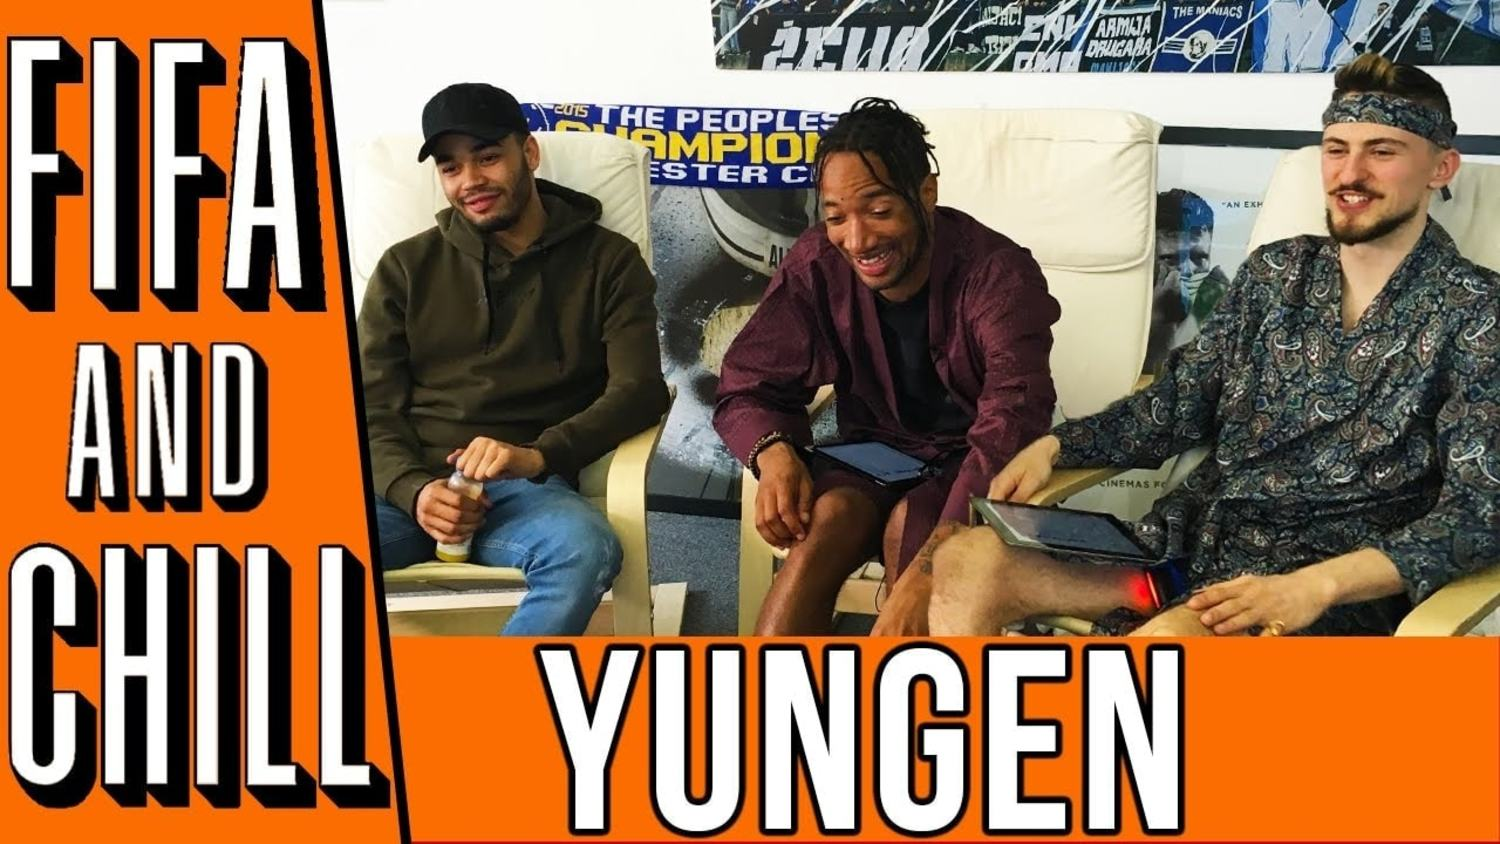 FIFA and Chill with Yungen: On Liverpool, Klopp and more!